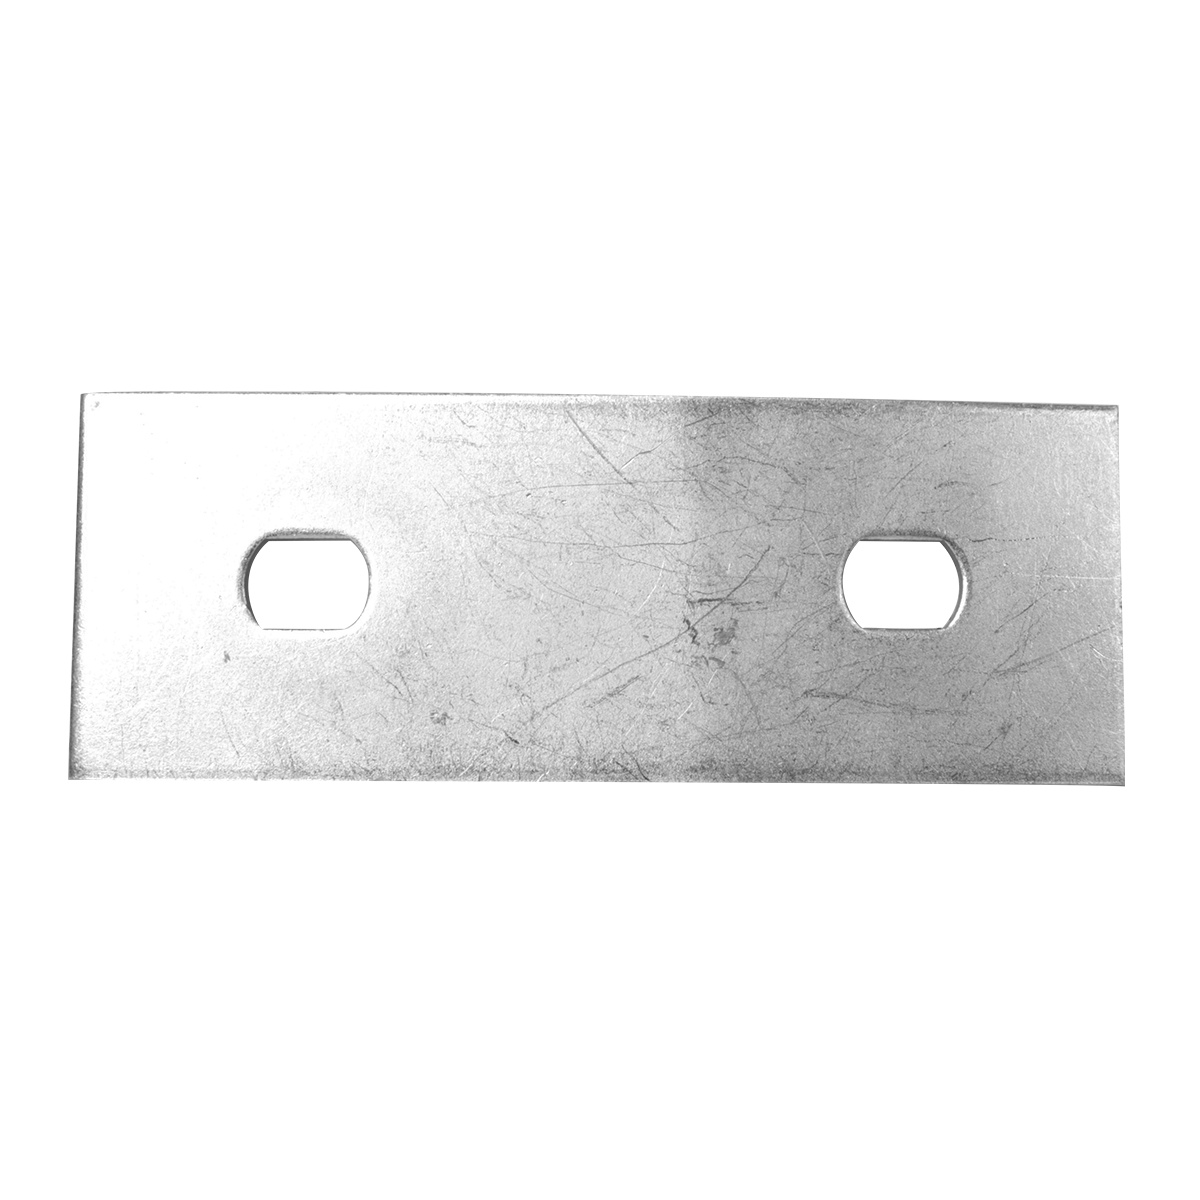 #94147 Stainless Steel Bumper Guide Bracket Kit For Plastic Bumper - Back View